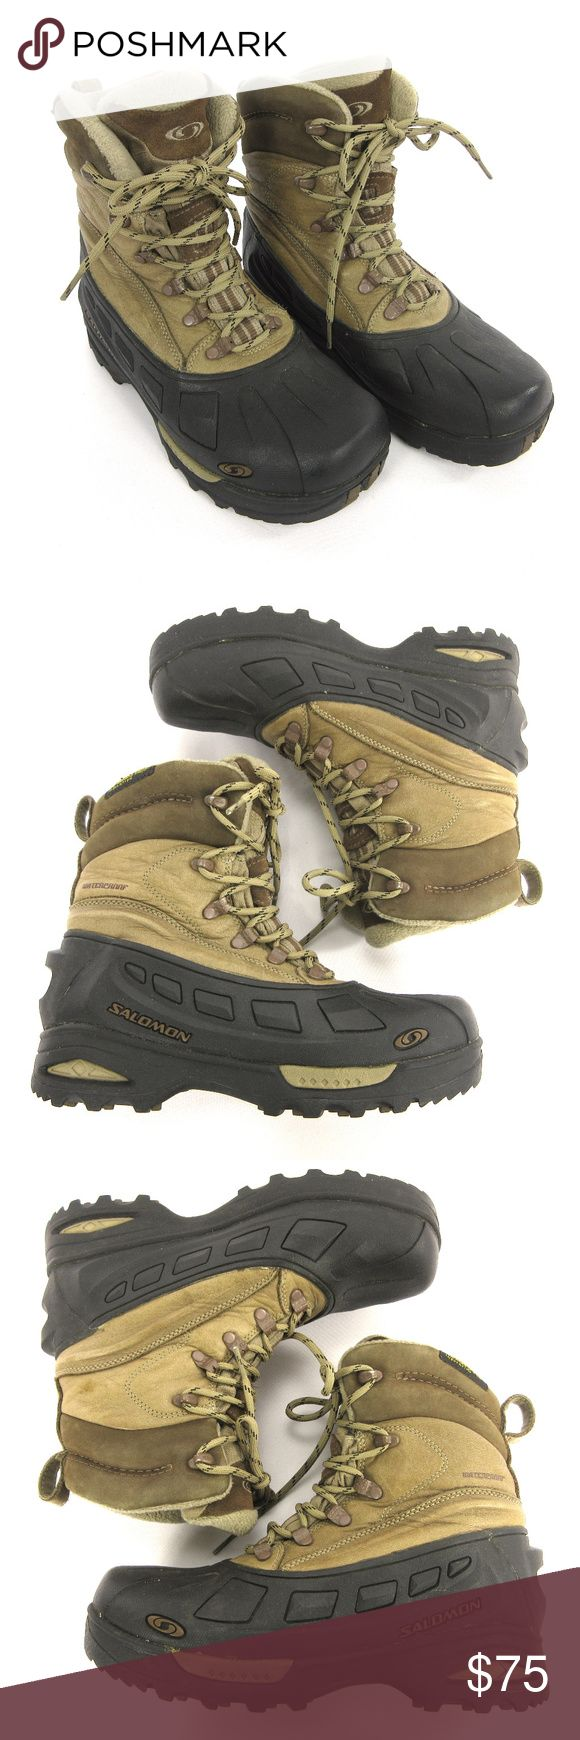 """Salomon Scrambler Mens Winter Boots 7 Waterproof Multisport Footwear Height Mid-calf Footwear Closure Lace-up Waterproof Yes Comfort Range -12 degrees Fahrenheit Upper Full-grain leather/rubber Lining Polyester fleece/nylon Insulated Yes Insulation Polyester fiber Midsole EVA Outsole Rubber Weight (Pair) 3 lbs. 5 oz. Gender Men's  11"""" / 27.9 cm Length - Toe to Heel outside 4 1/8"""" / 10.5 cm Width at widest part of sole outside 8 1/4"""" / 21 cm Shaft - top of boot to floor Salomon…"""